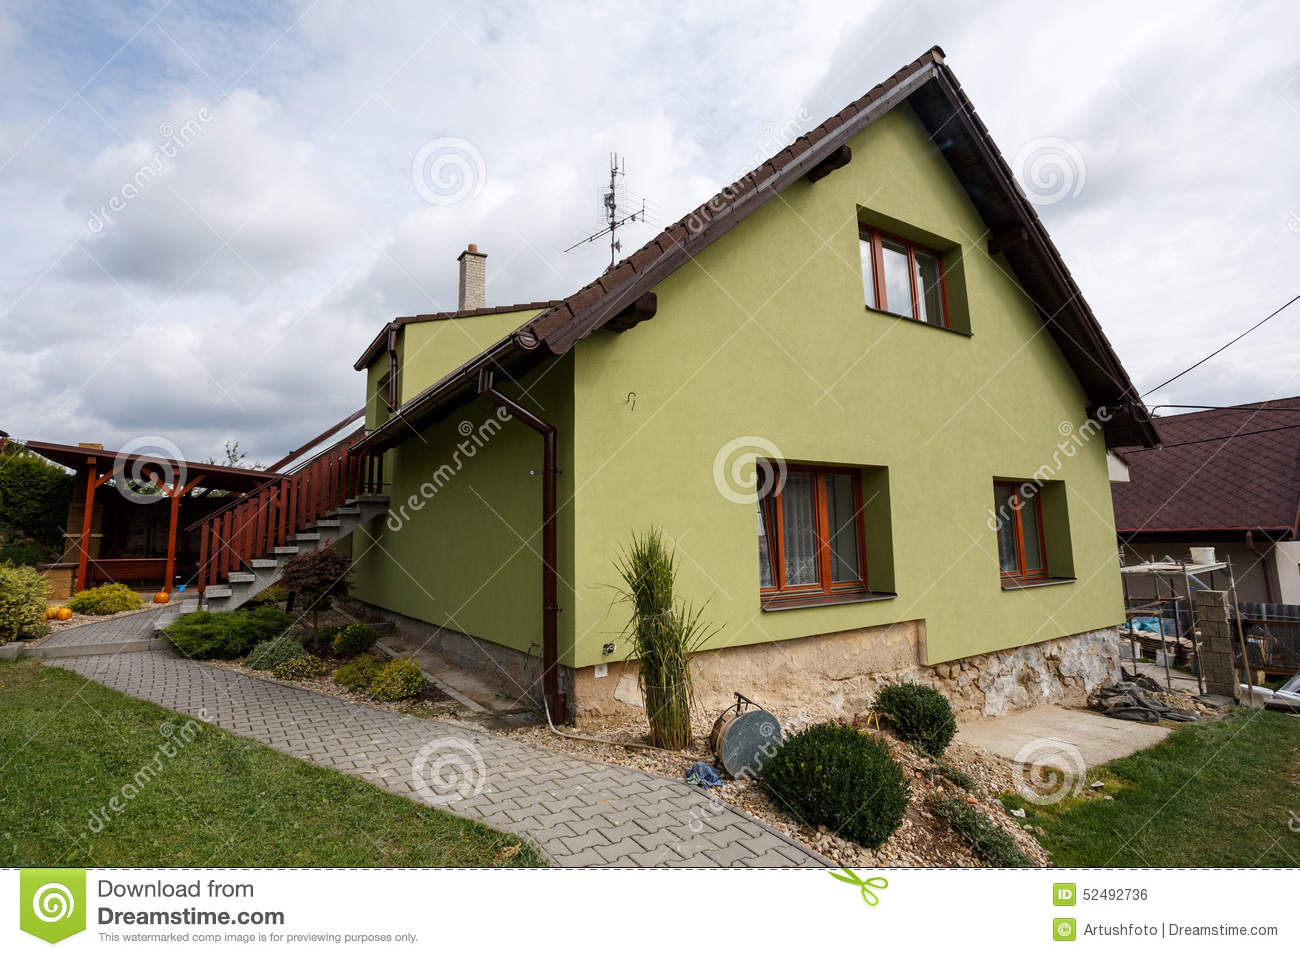 Facades De Maisons En Couleurs repaired rural house stock photo. image of done, fixing